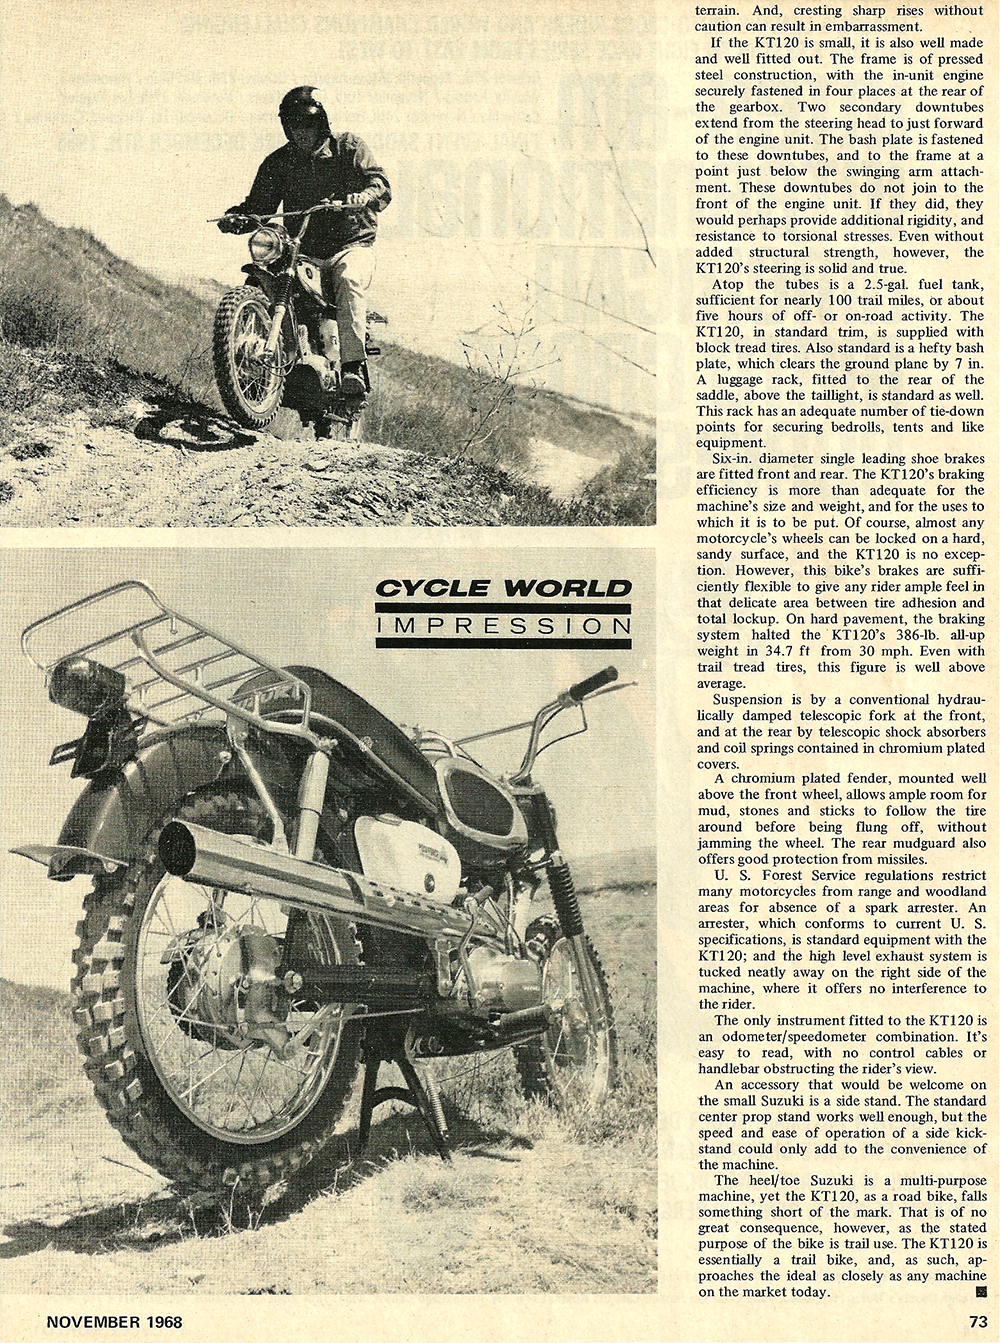 1968 Suzuki KT 120 Trail bike road test 02.jpg